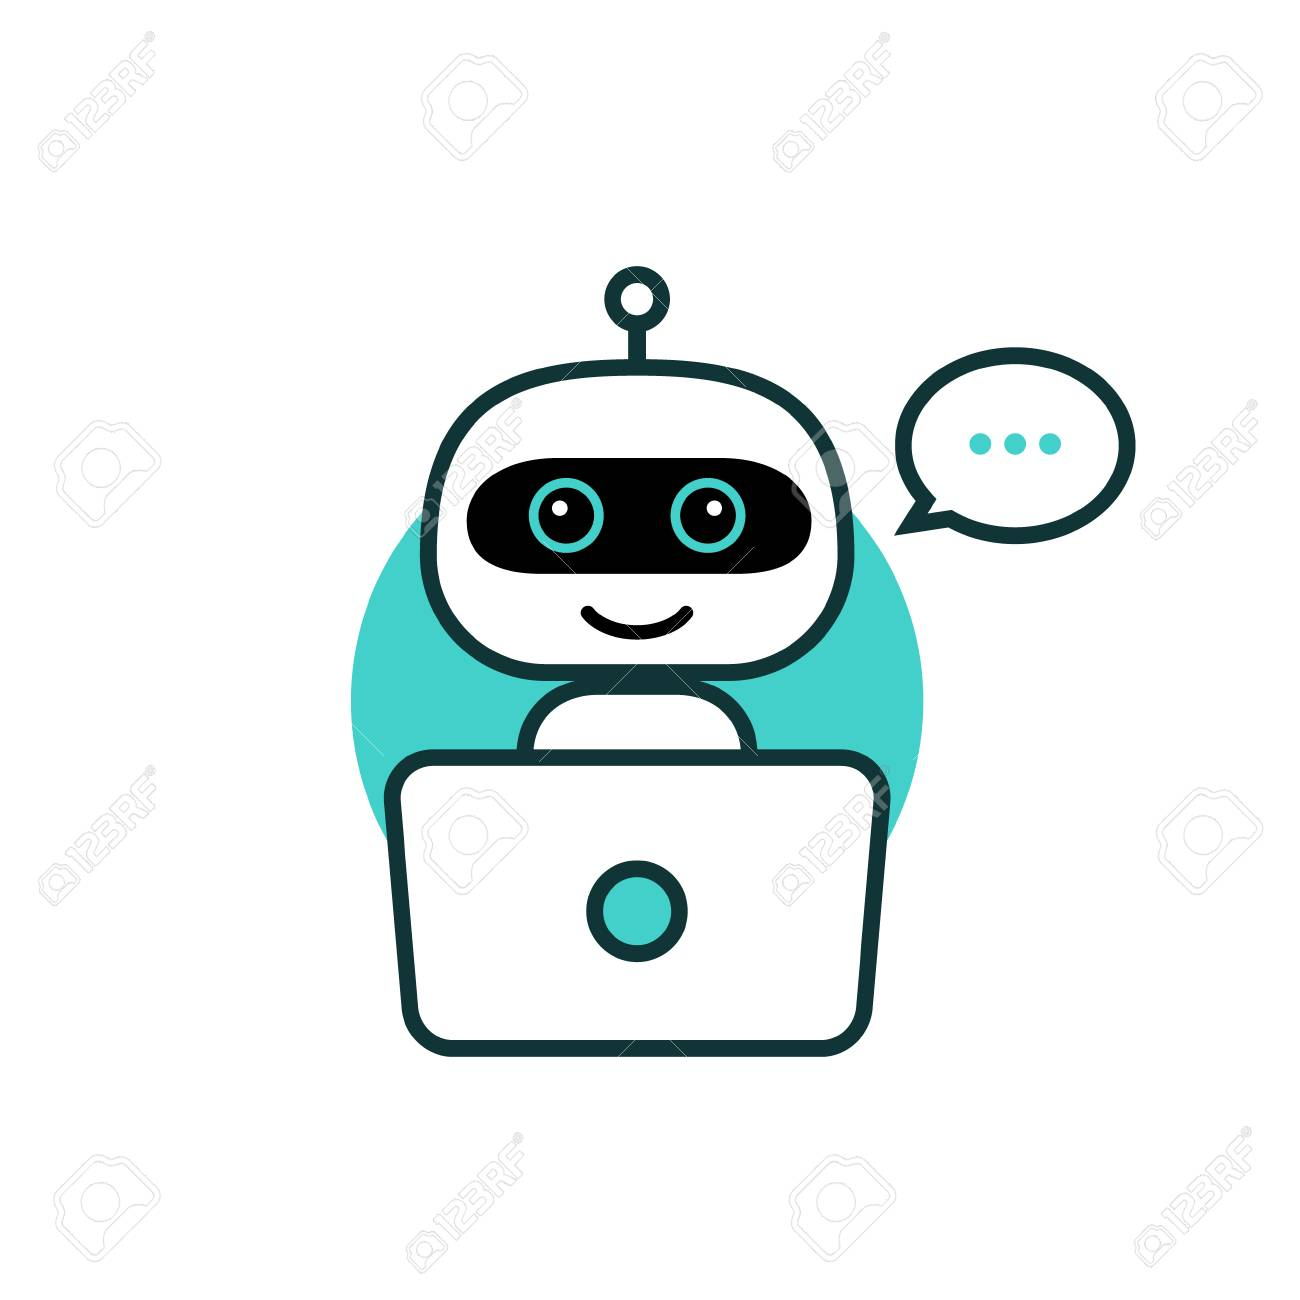 Robot icon. Chat Bot sign for support service concept. Chatbot character flat style. - 116377855